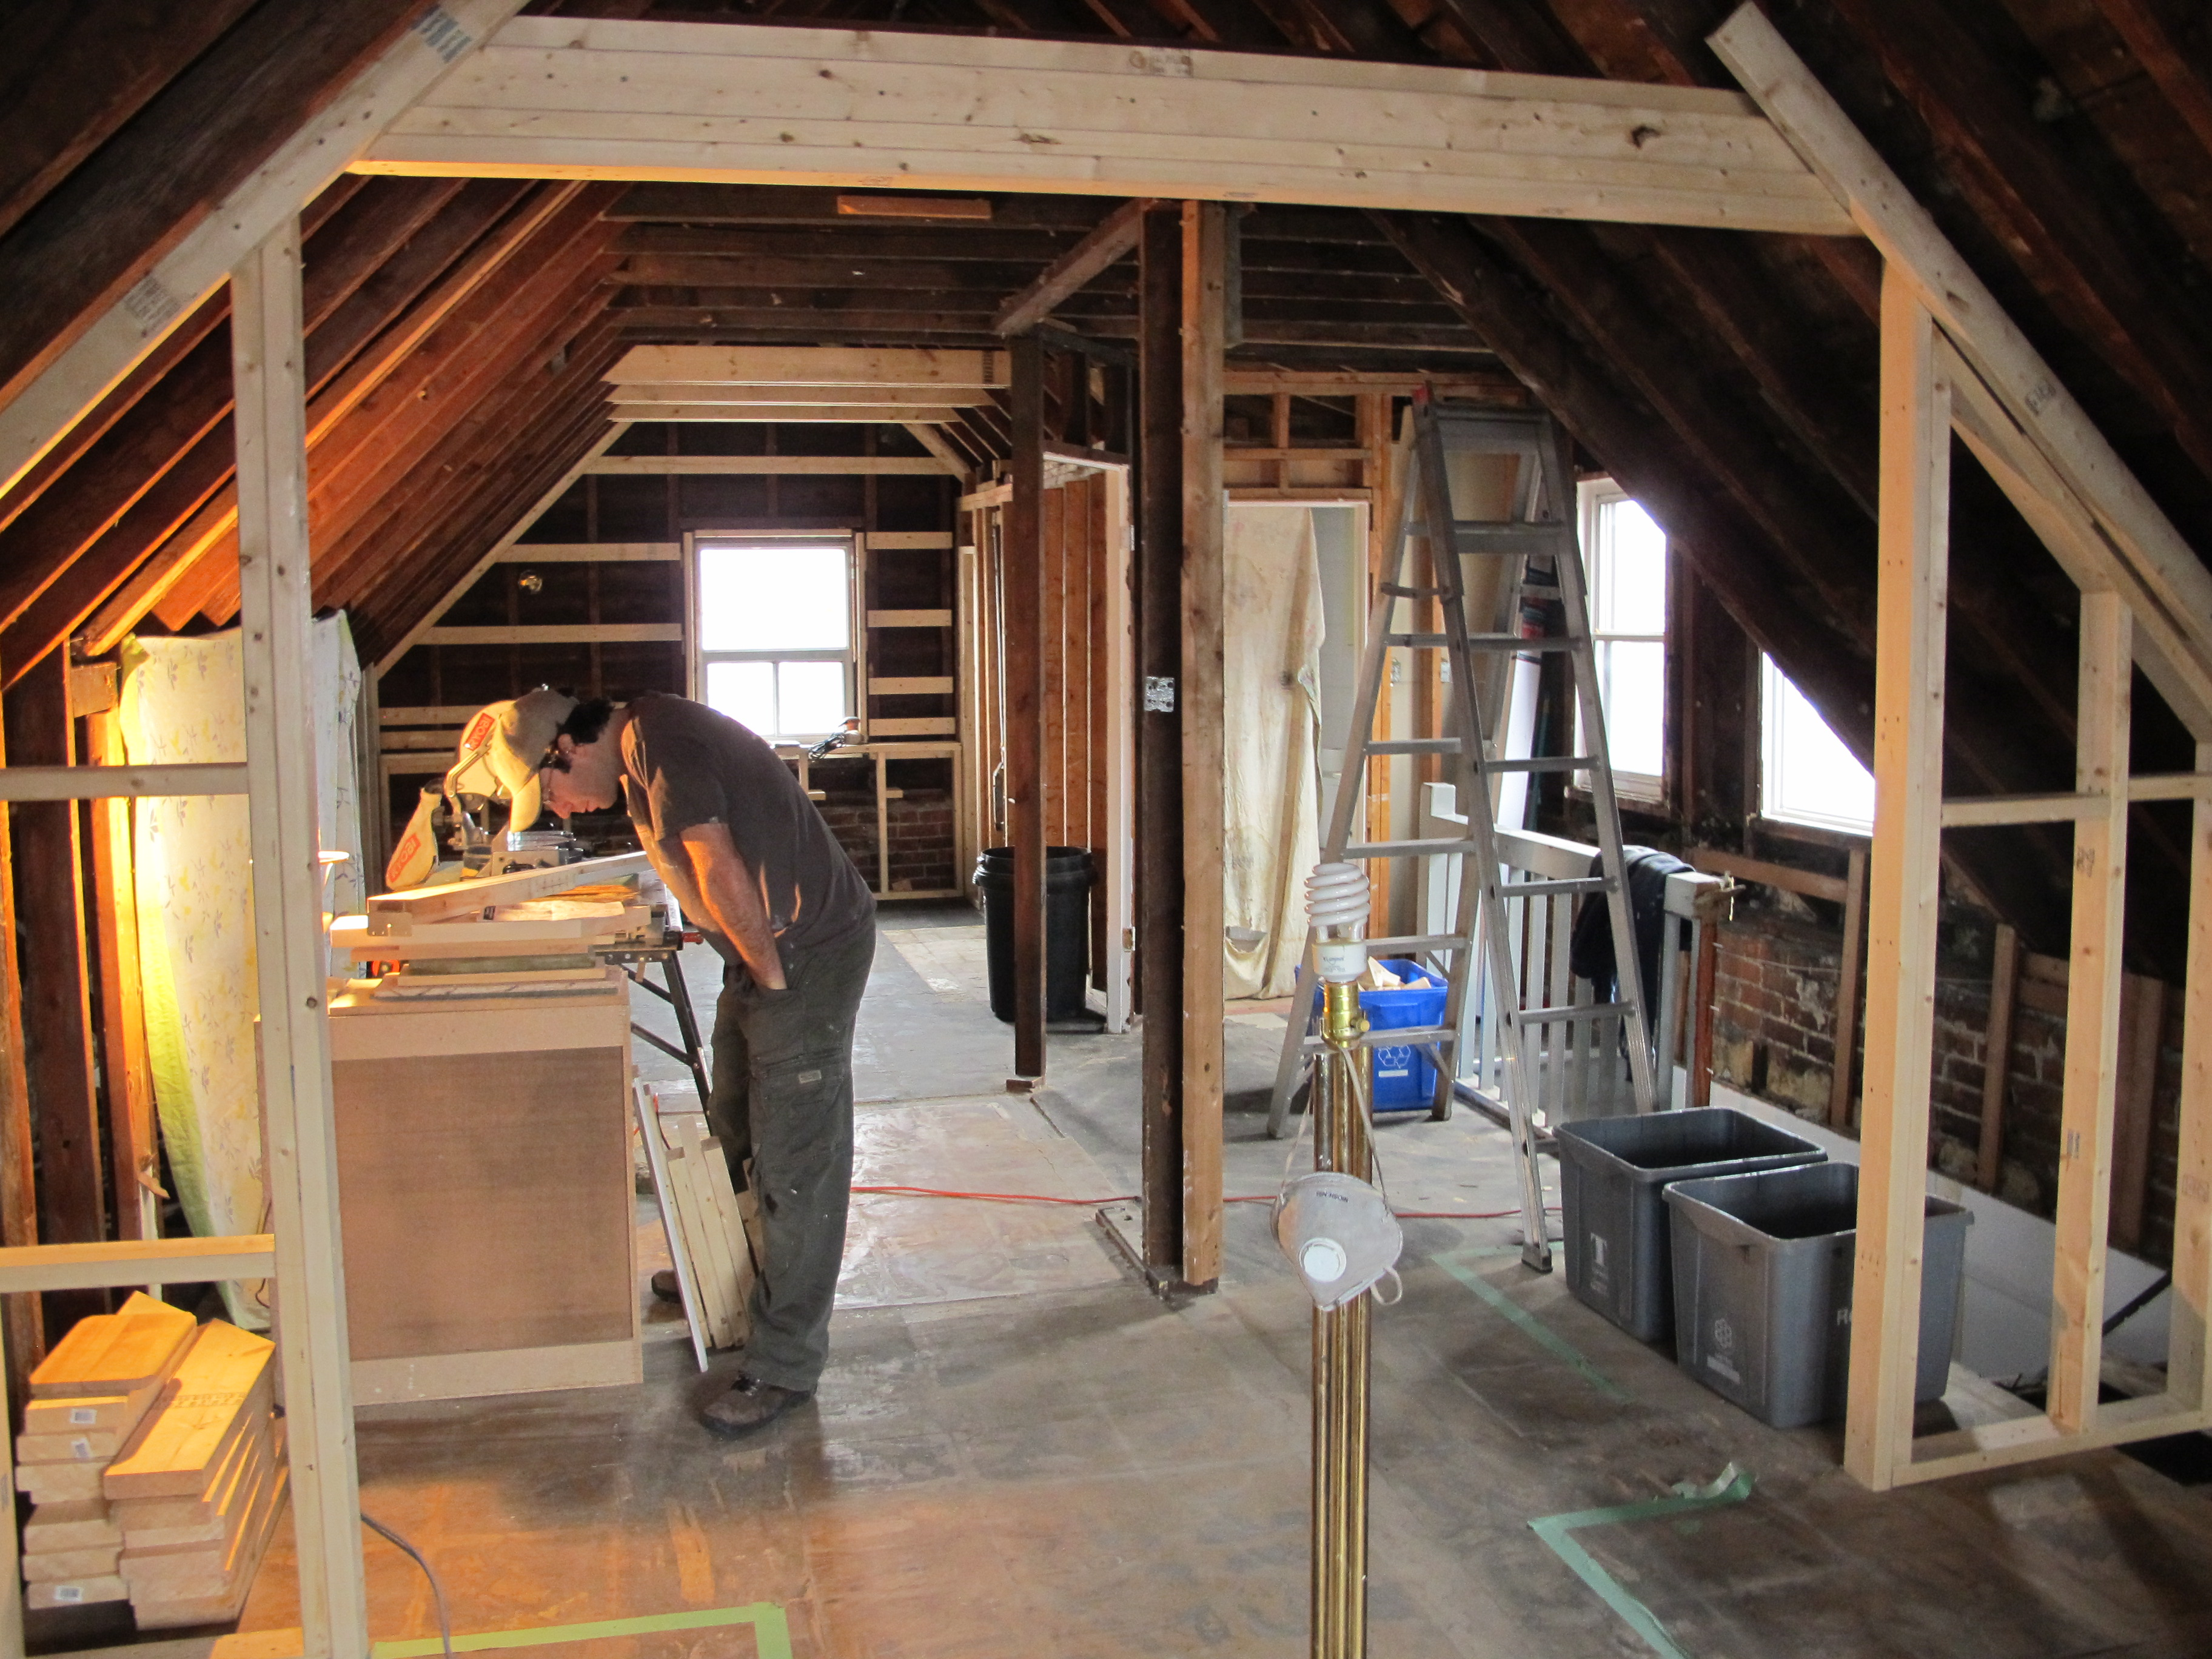 attic addition plans - I want to add a shed dormer to the attic room I already have